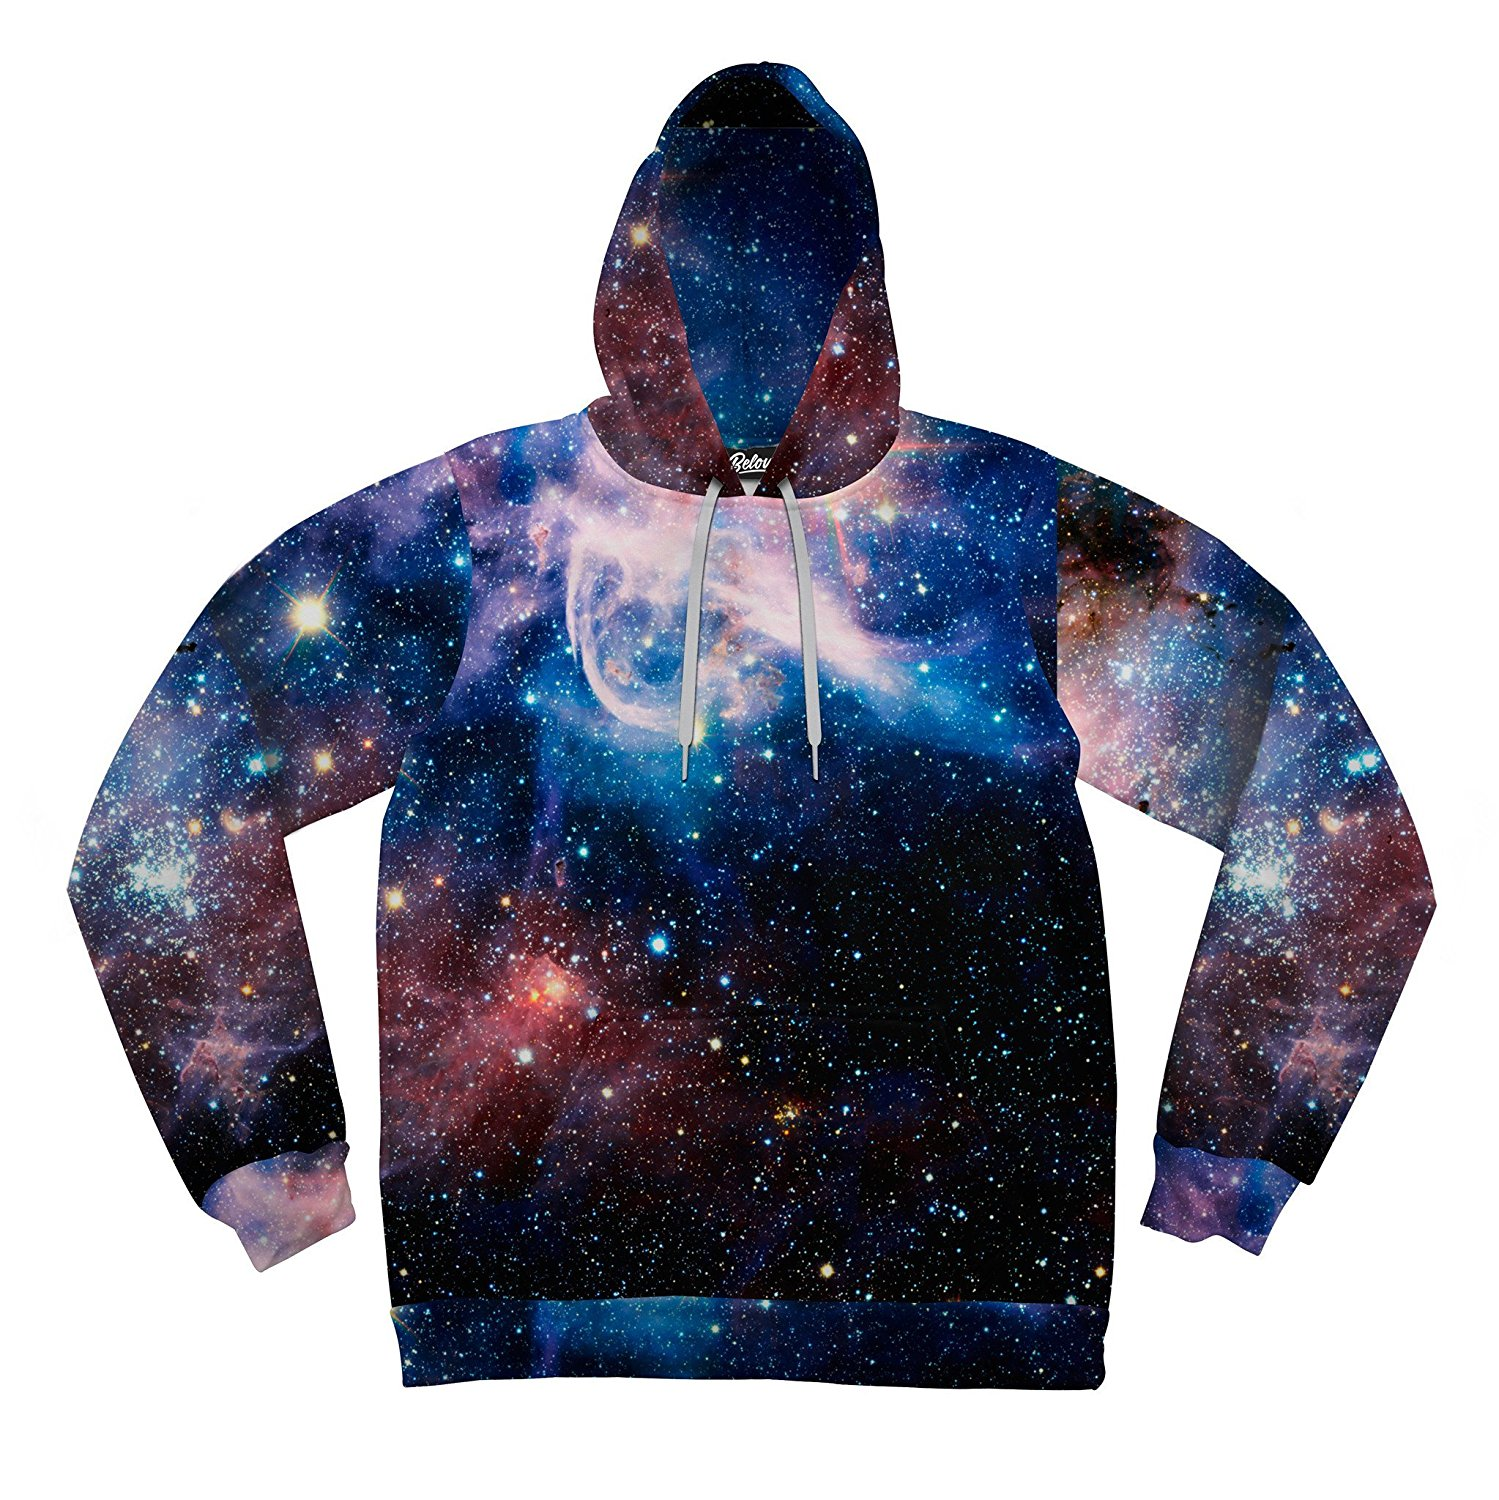 Beloved Shirts Lush Galaxy Hoodie - Premium All Over Print - Ready to Ship